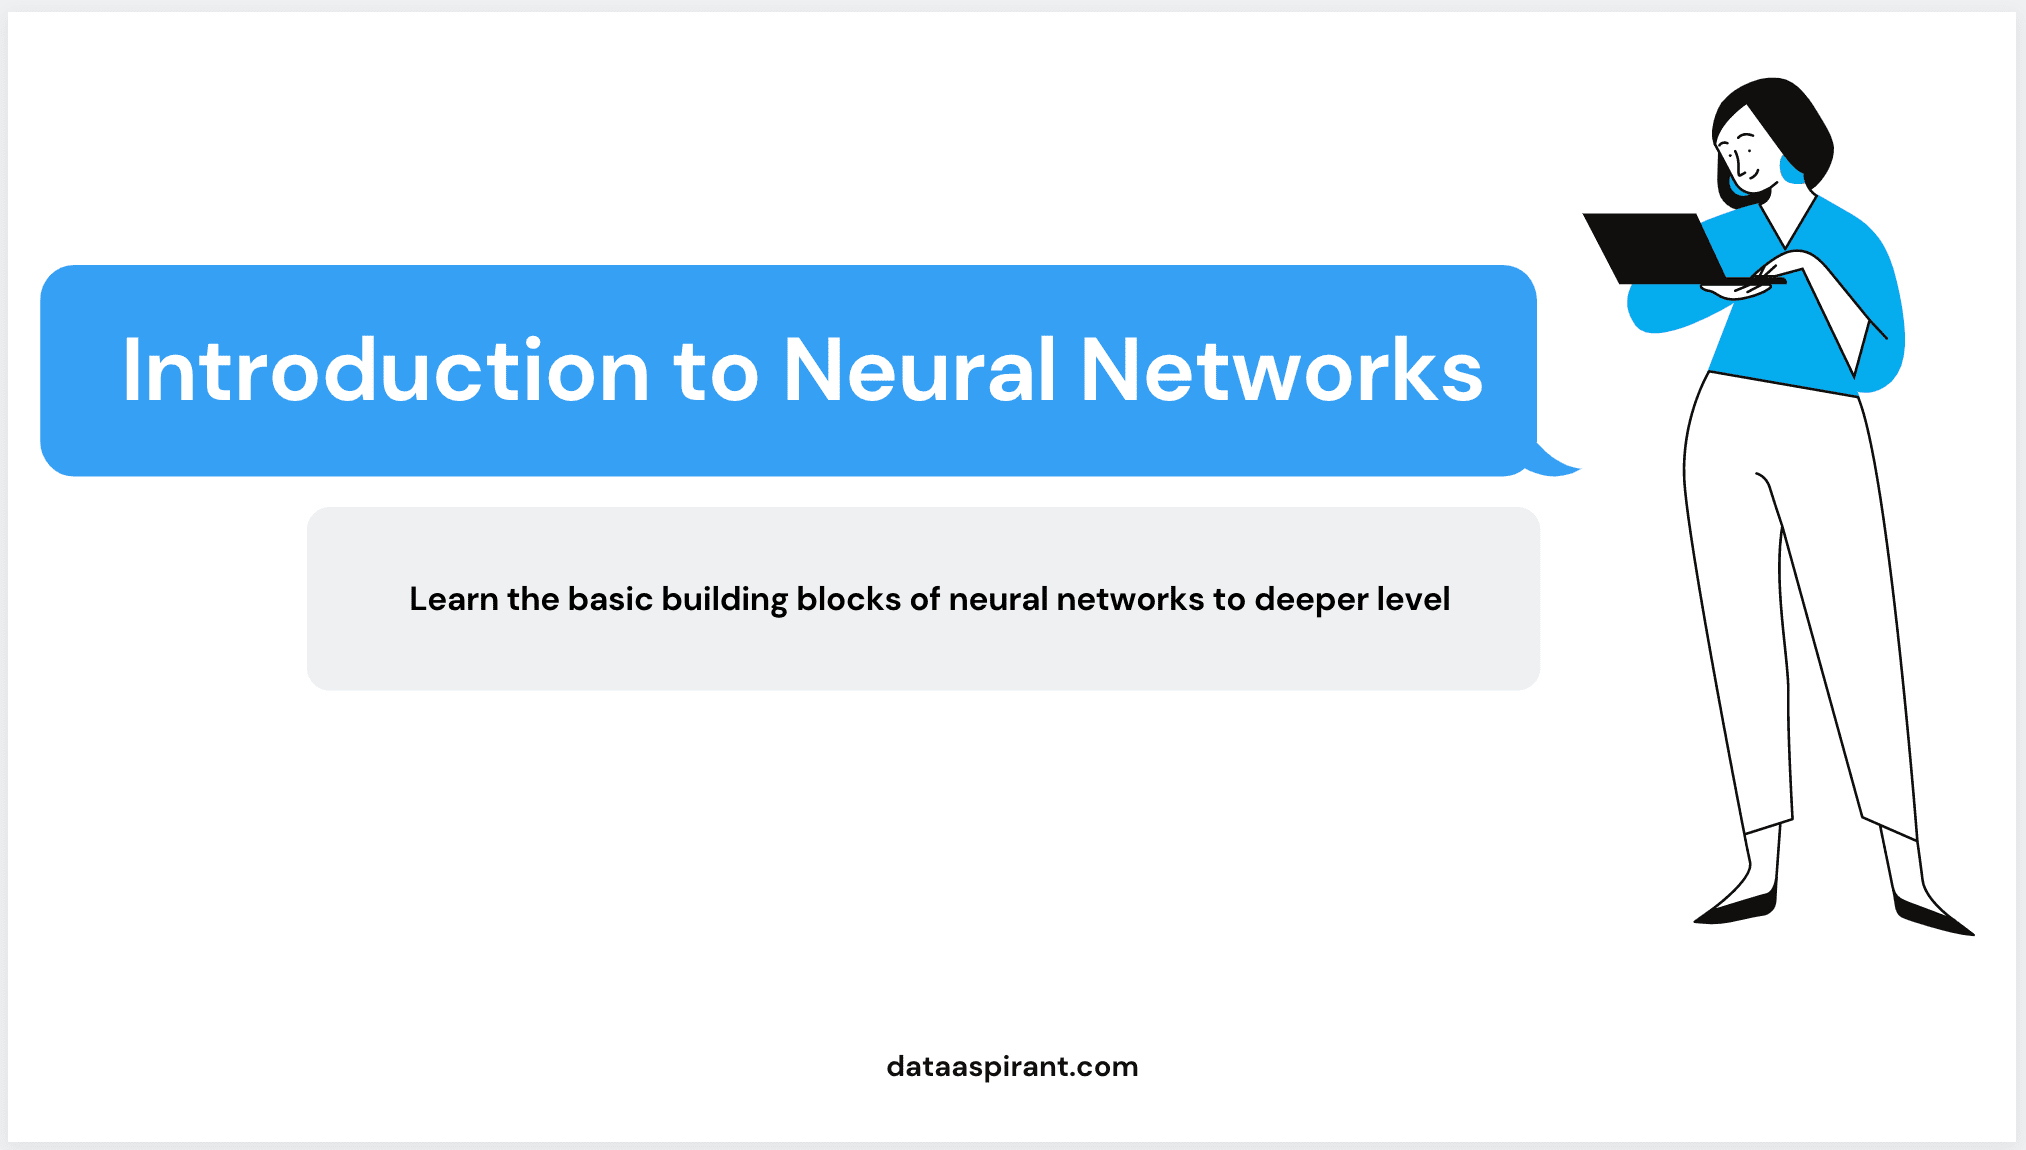 Introduction to Neural Network Basics